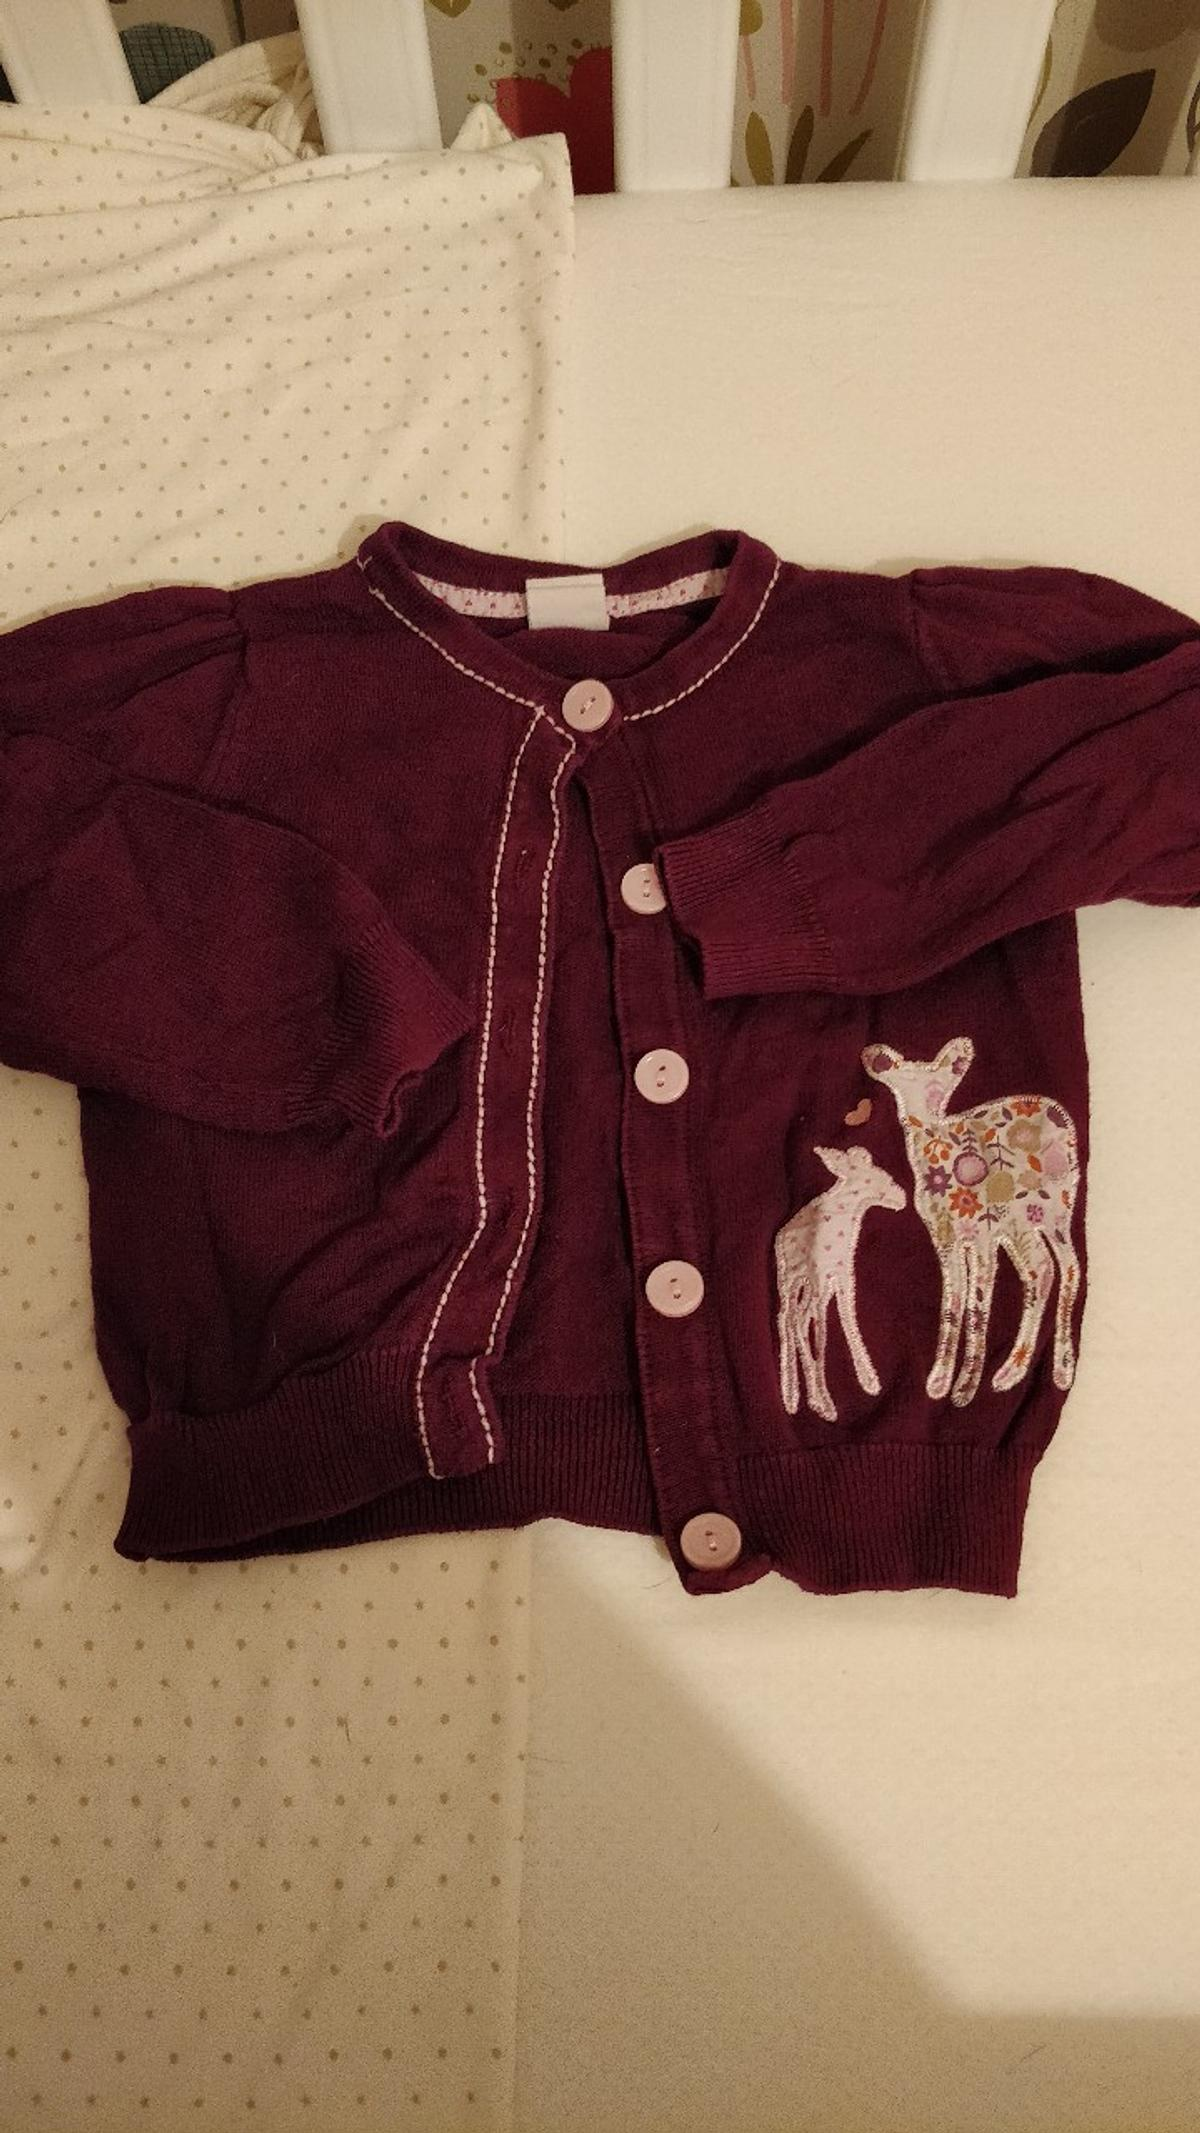 Cardigan from H&M in size 9-12m Good condition, no rips or stains. From a smoke free home.